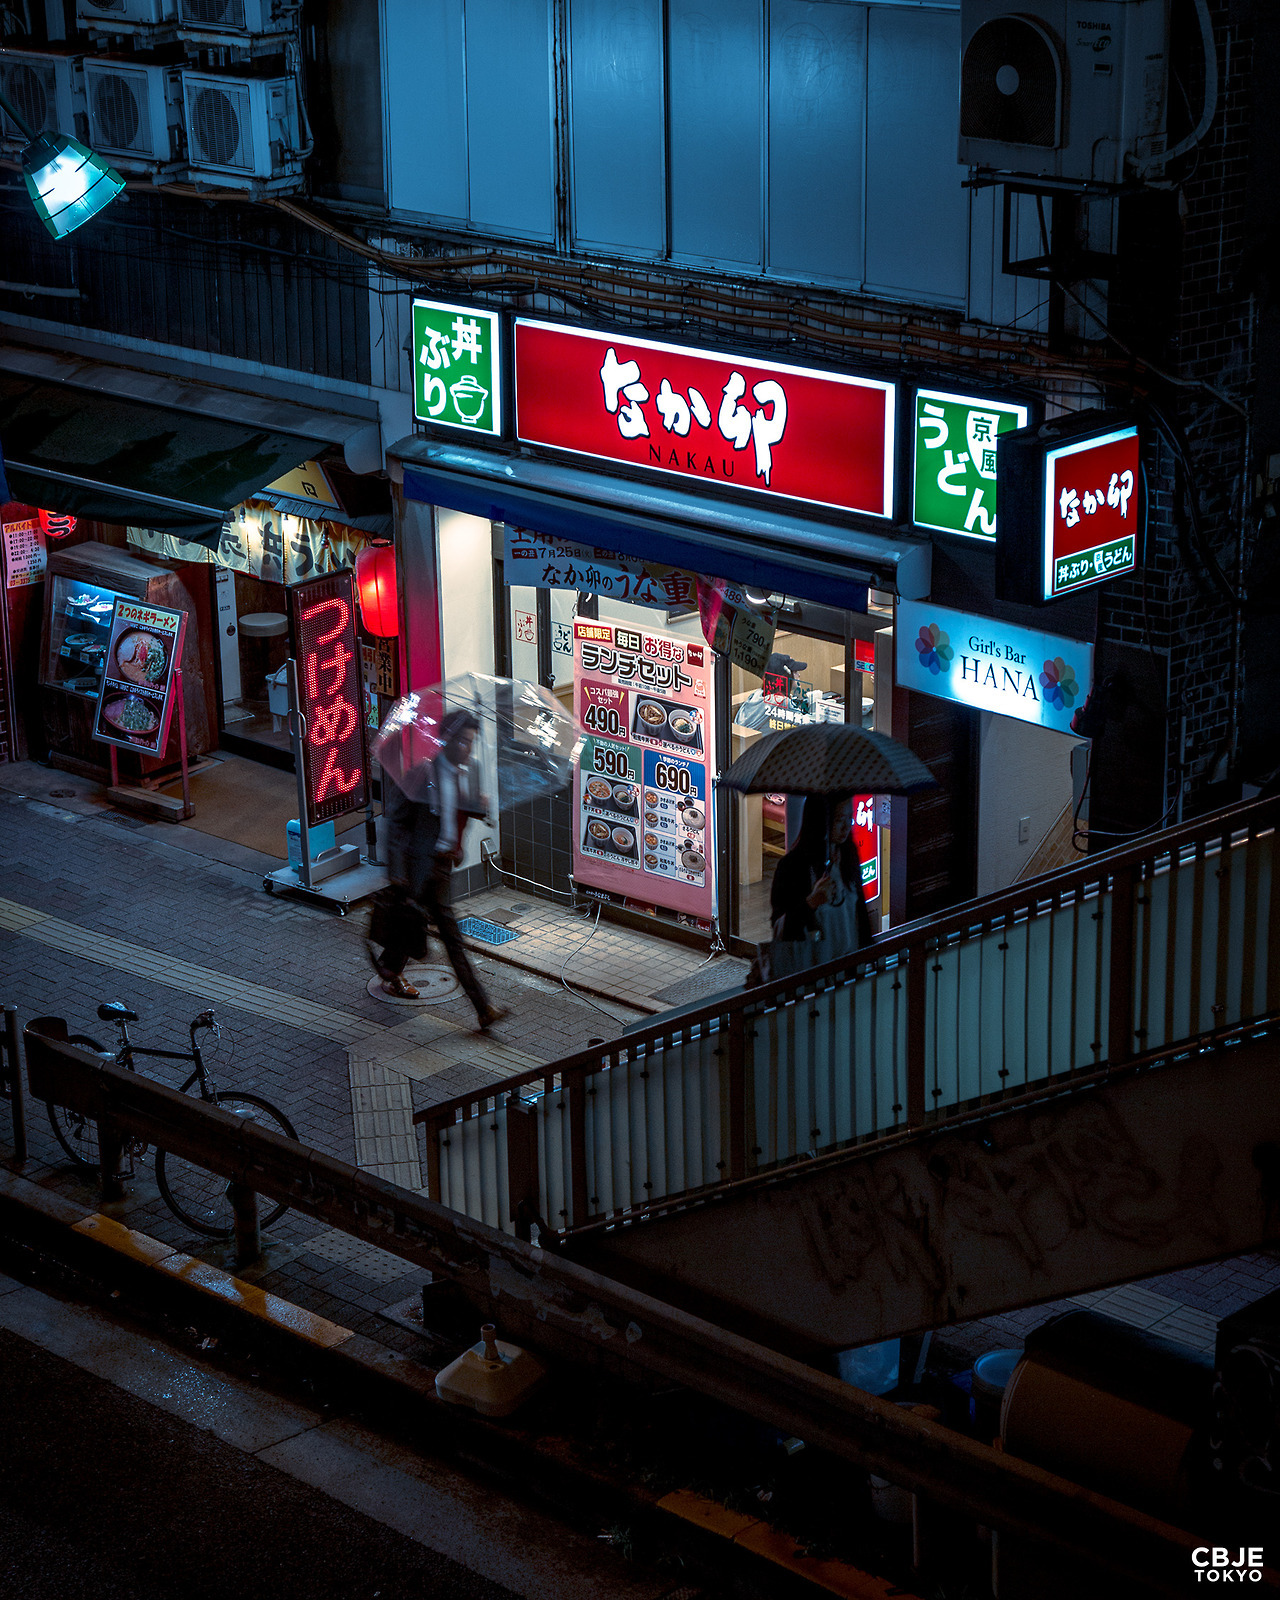 cbje-tokyo :     ⚡️ The night is young and my passion for photographing Tokyo is only growing.